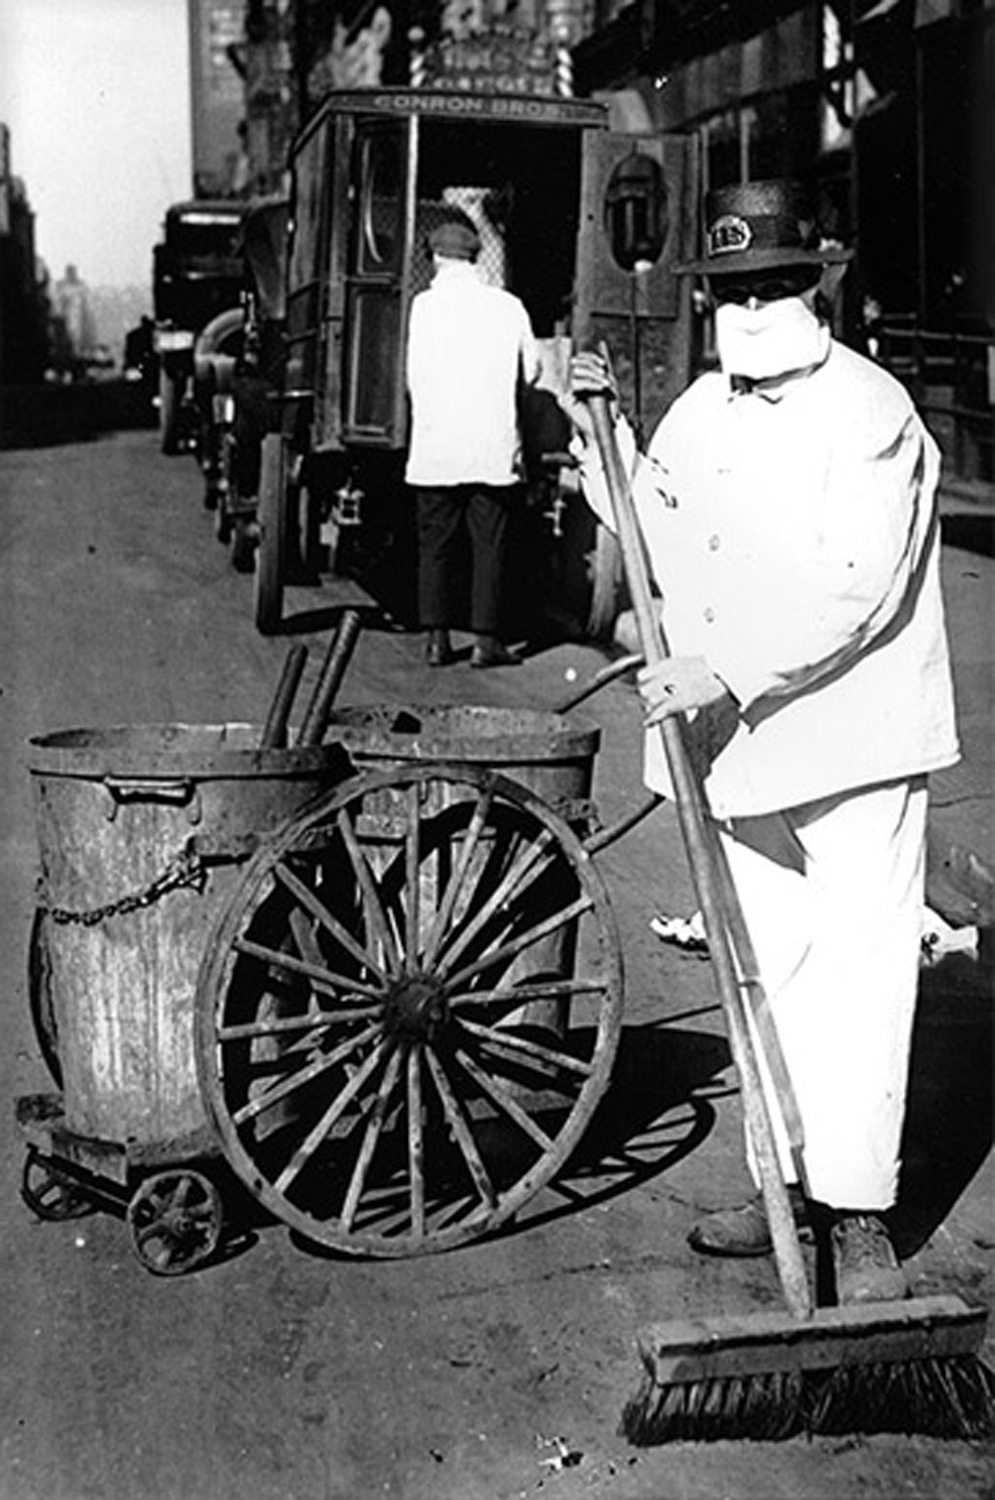 Two photos from the 1918 influenza pandemic: a poster warning people to stay home and a street sweeper in a mask.